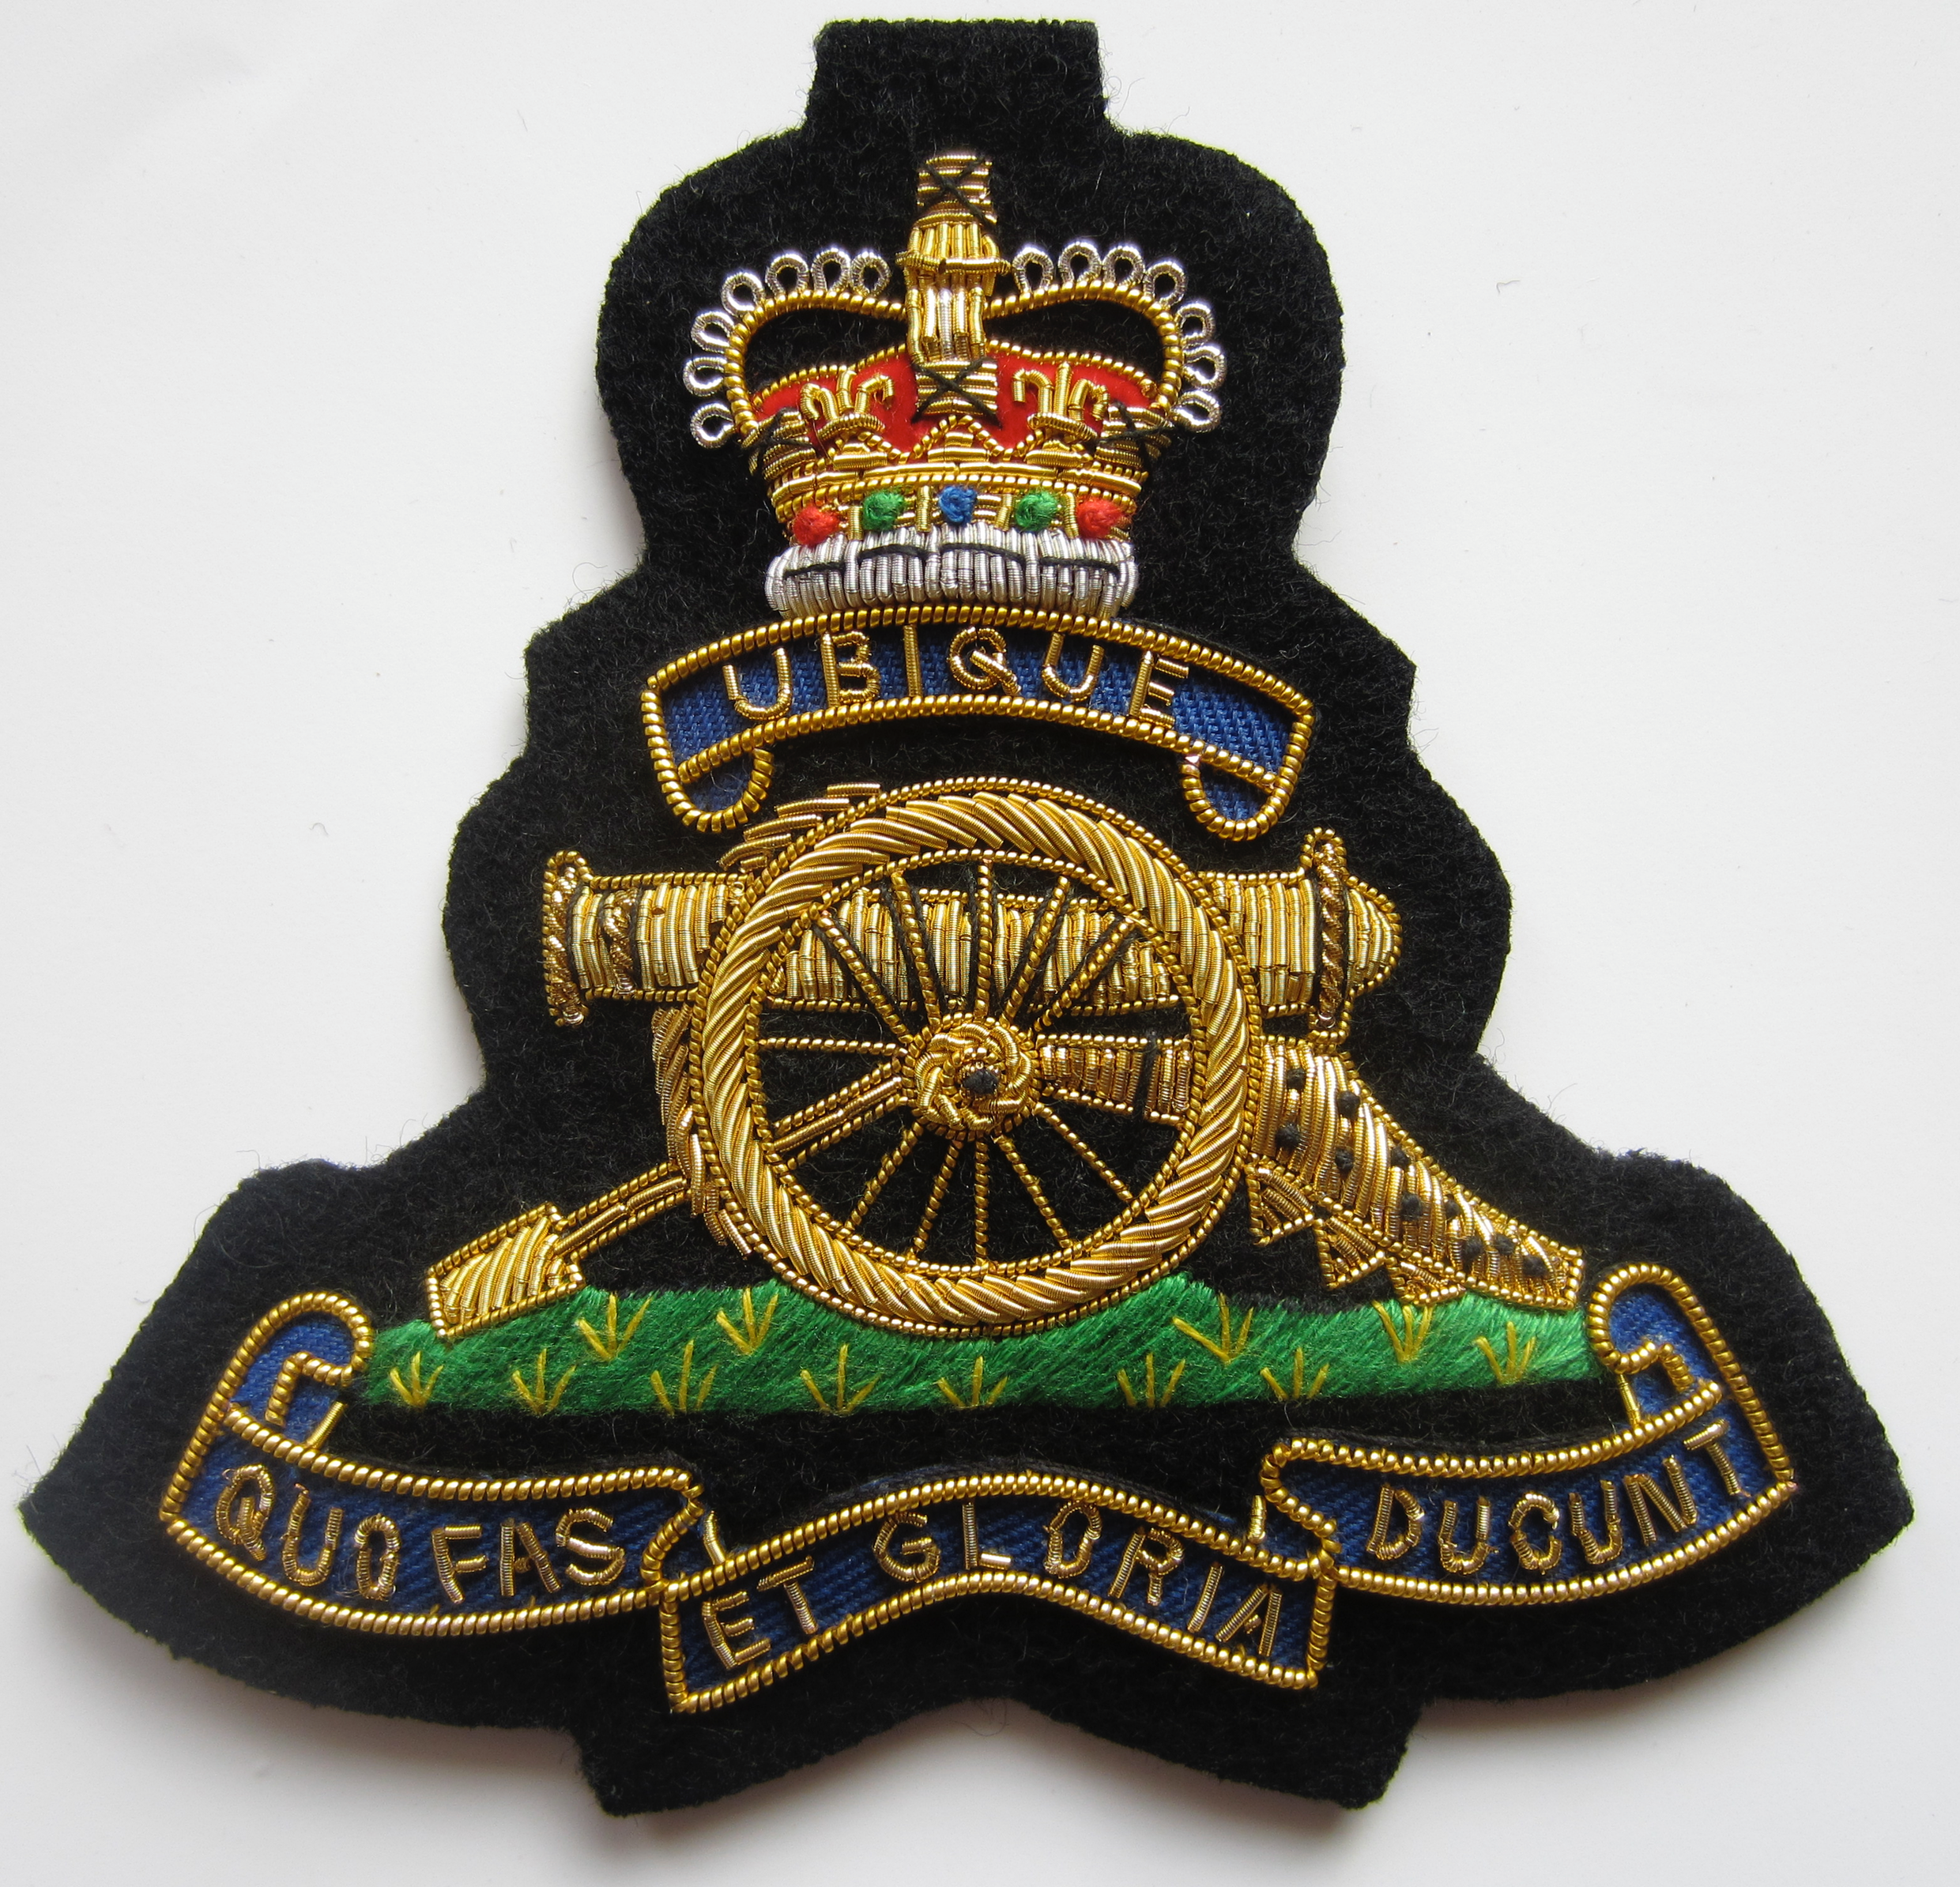 gunners blazer badge